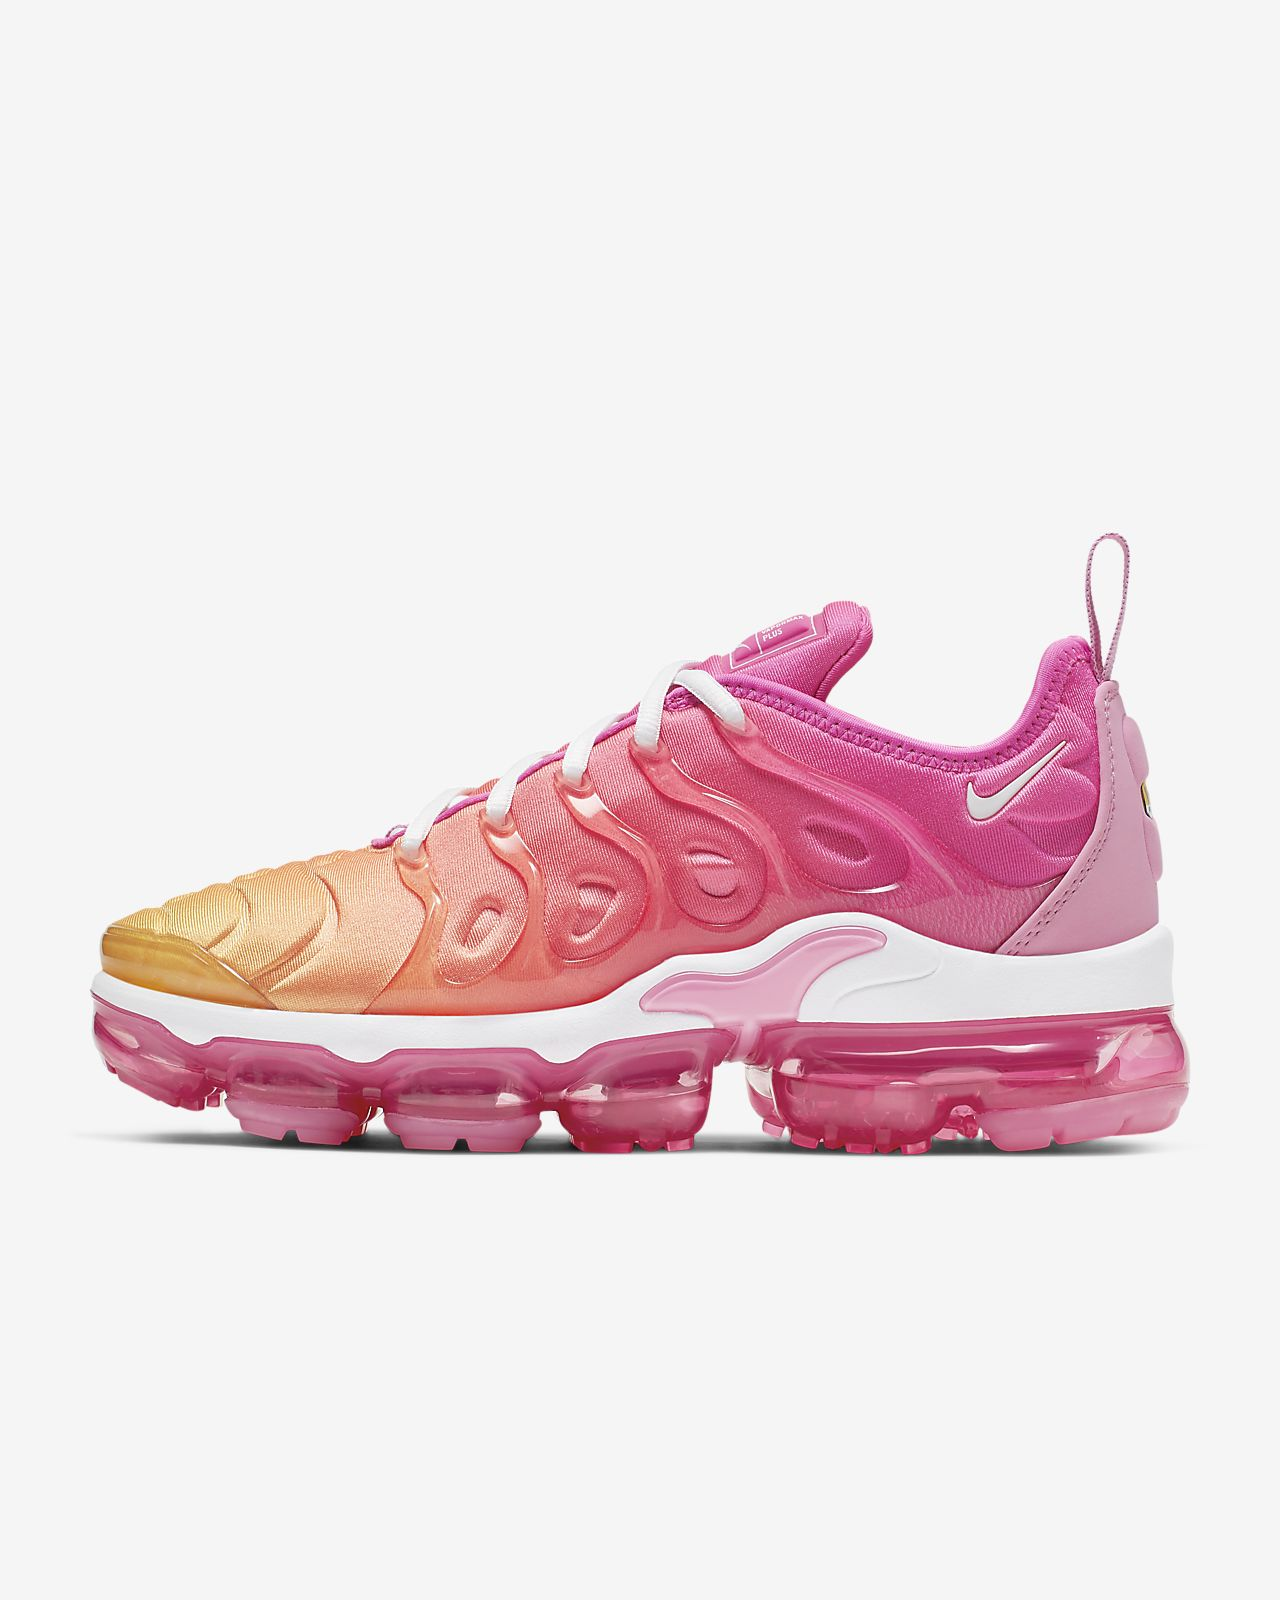 69f465a7c548 Nike Air VaporMax Plus Women s Shoe. Nike.com